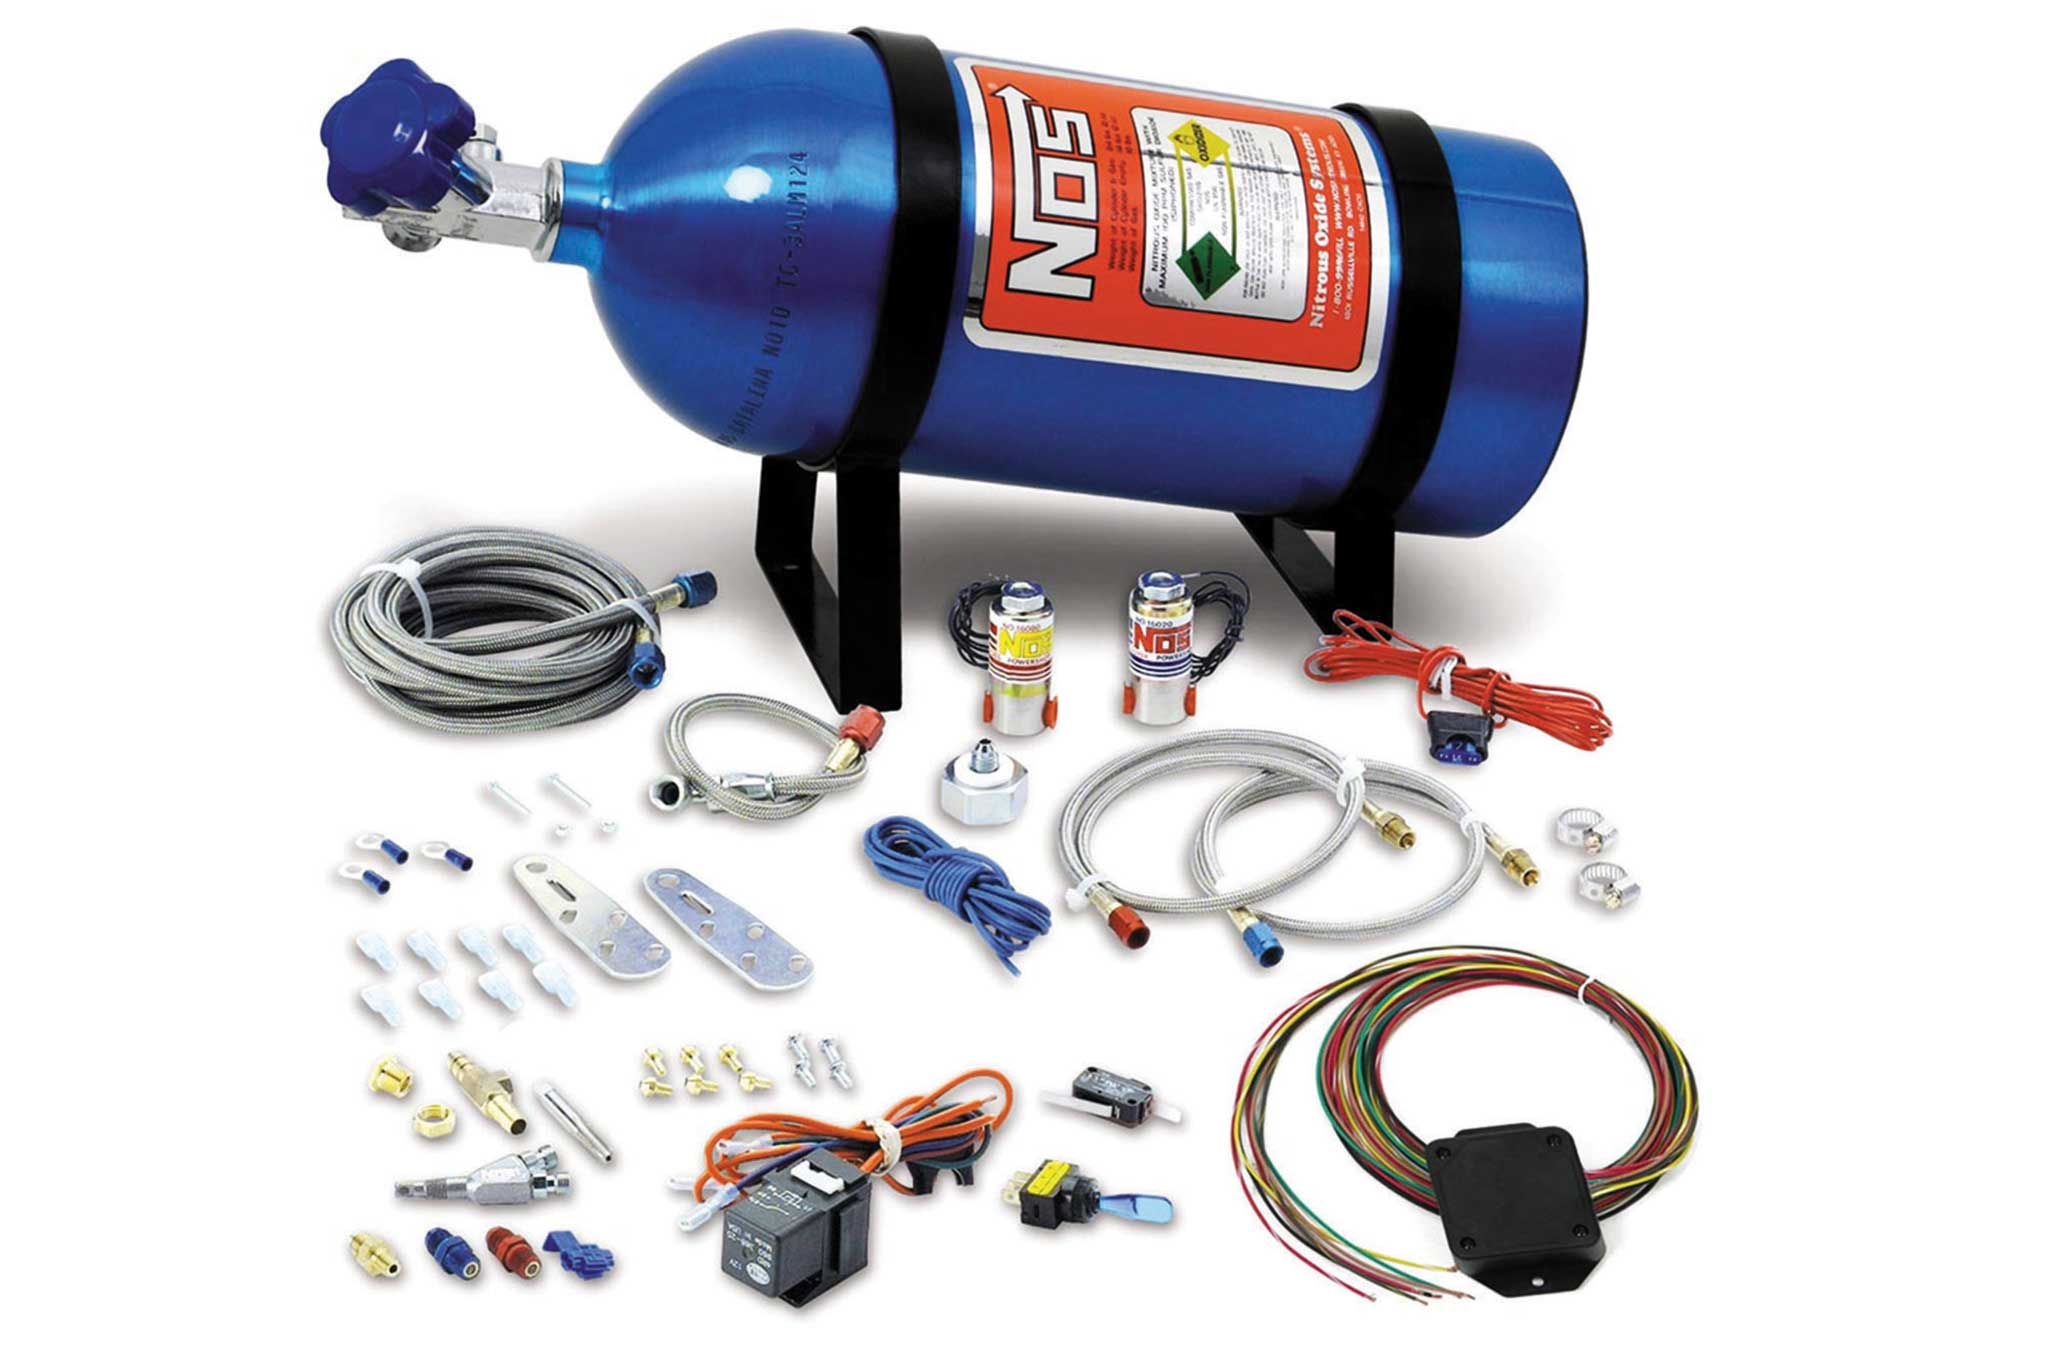 holley ls engine accessories universal drive by wire wet nos kit